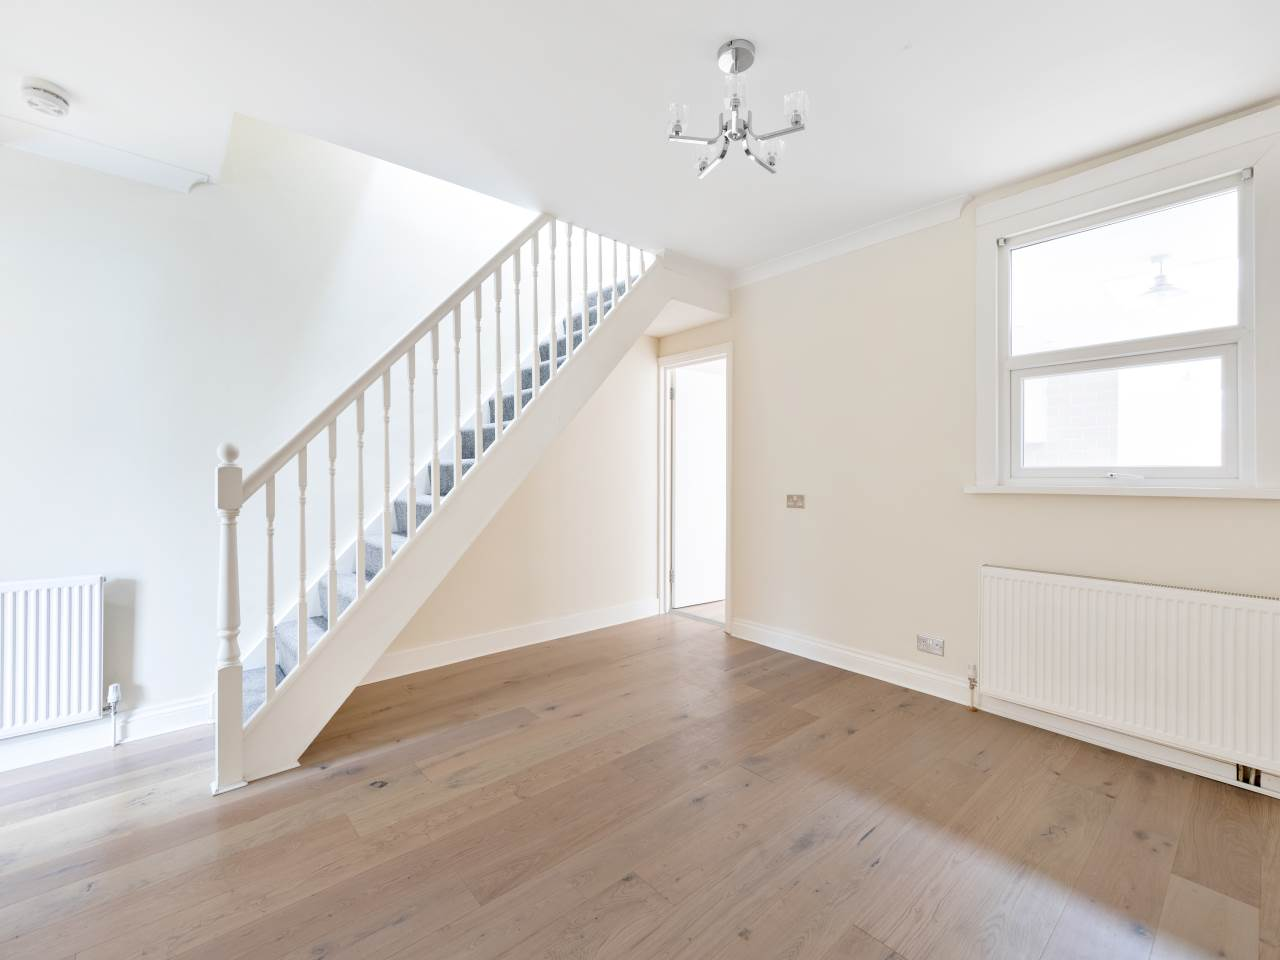 3 bed house for sale in Exning Road , Canning Town  5